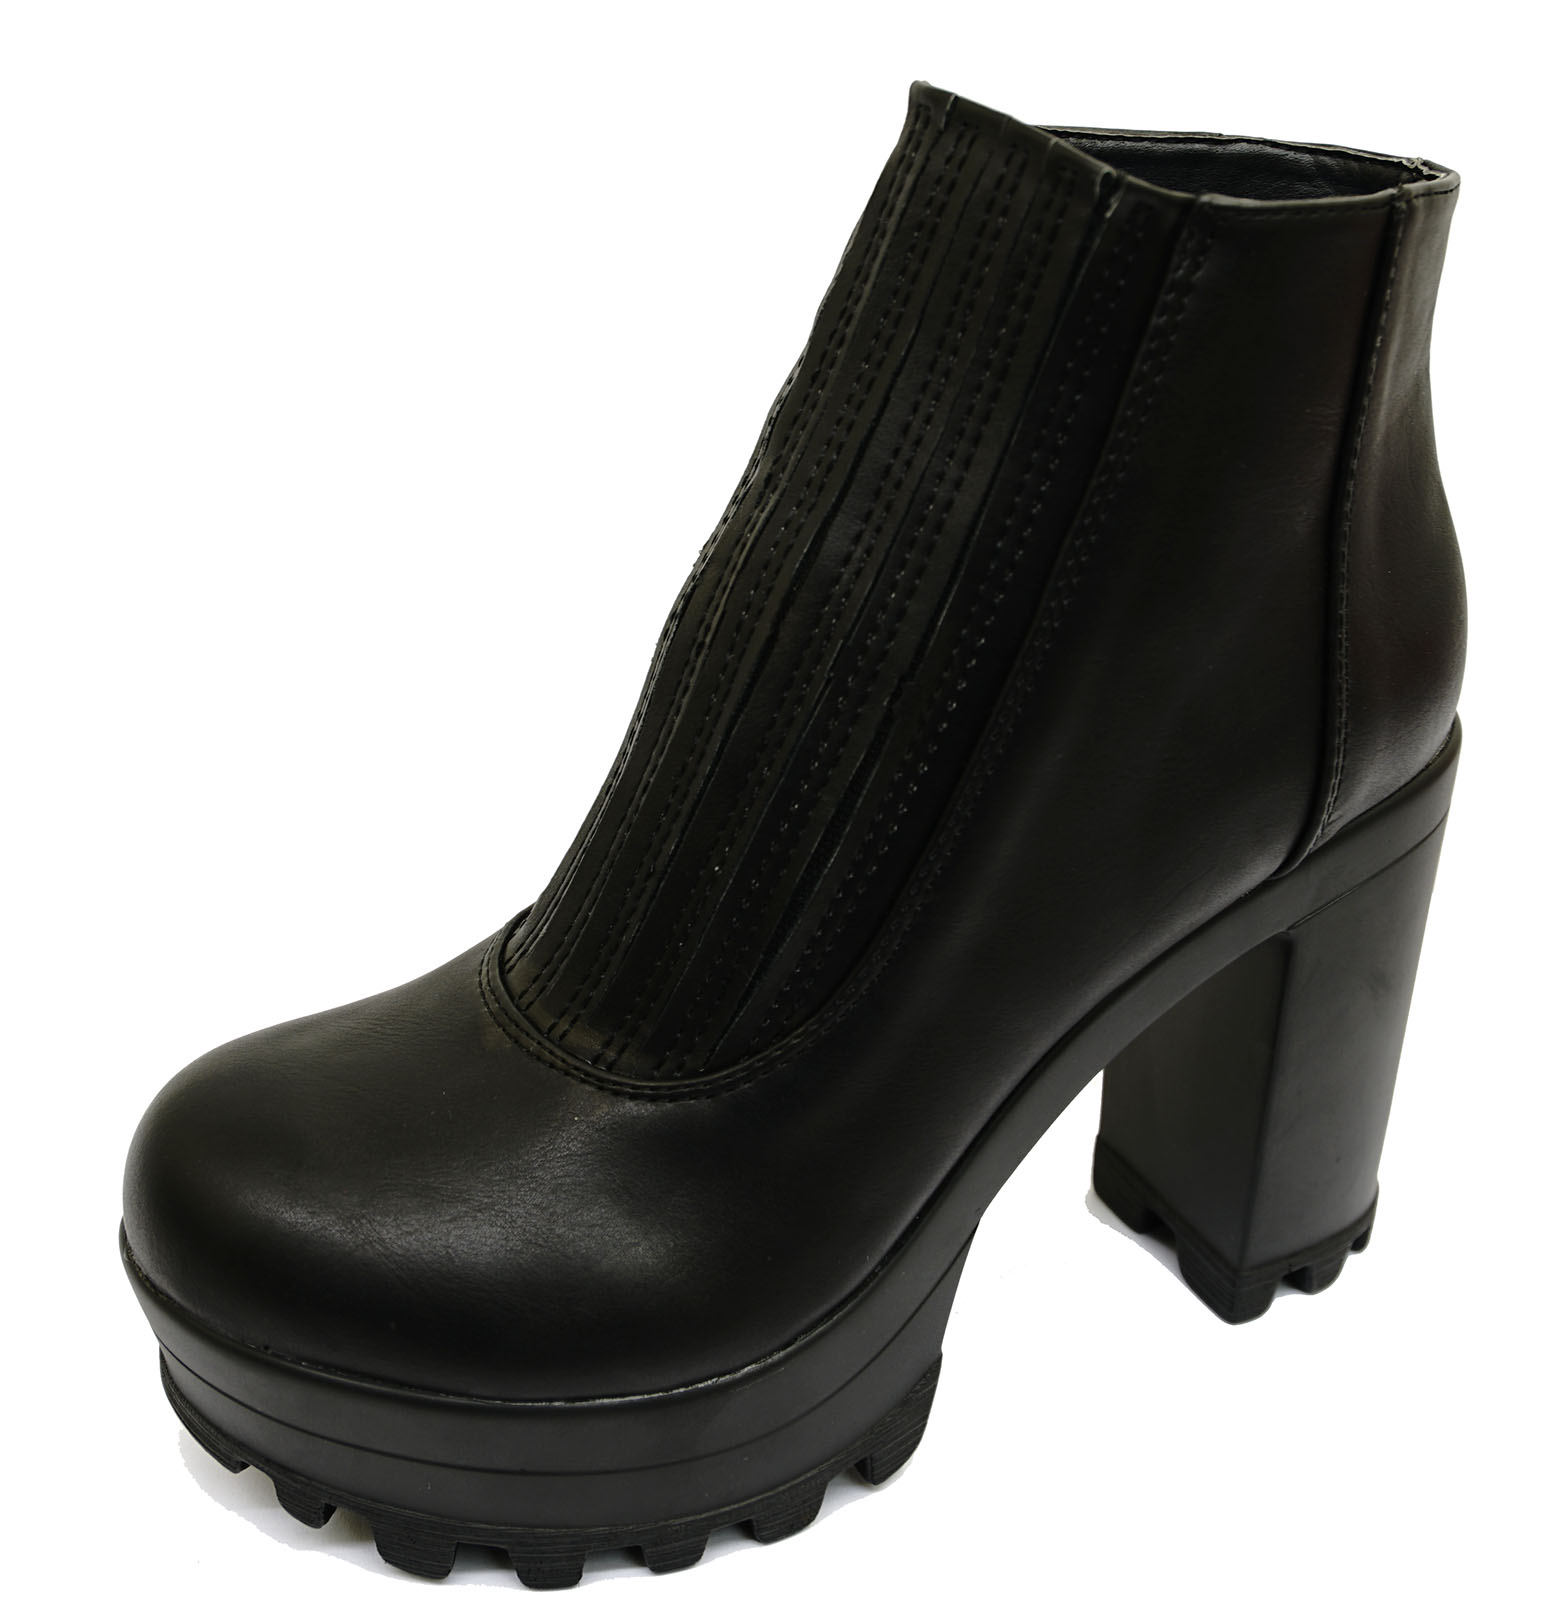 48f3f34c6e66 Ladies Black Chunky Pull-on Ankle Biker Calf Platform Stretch BOOTS ...